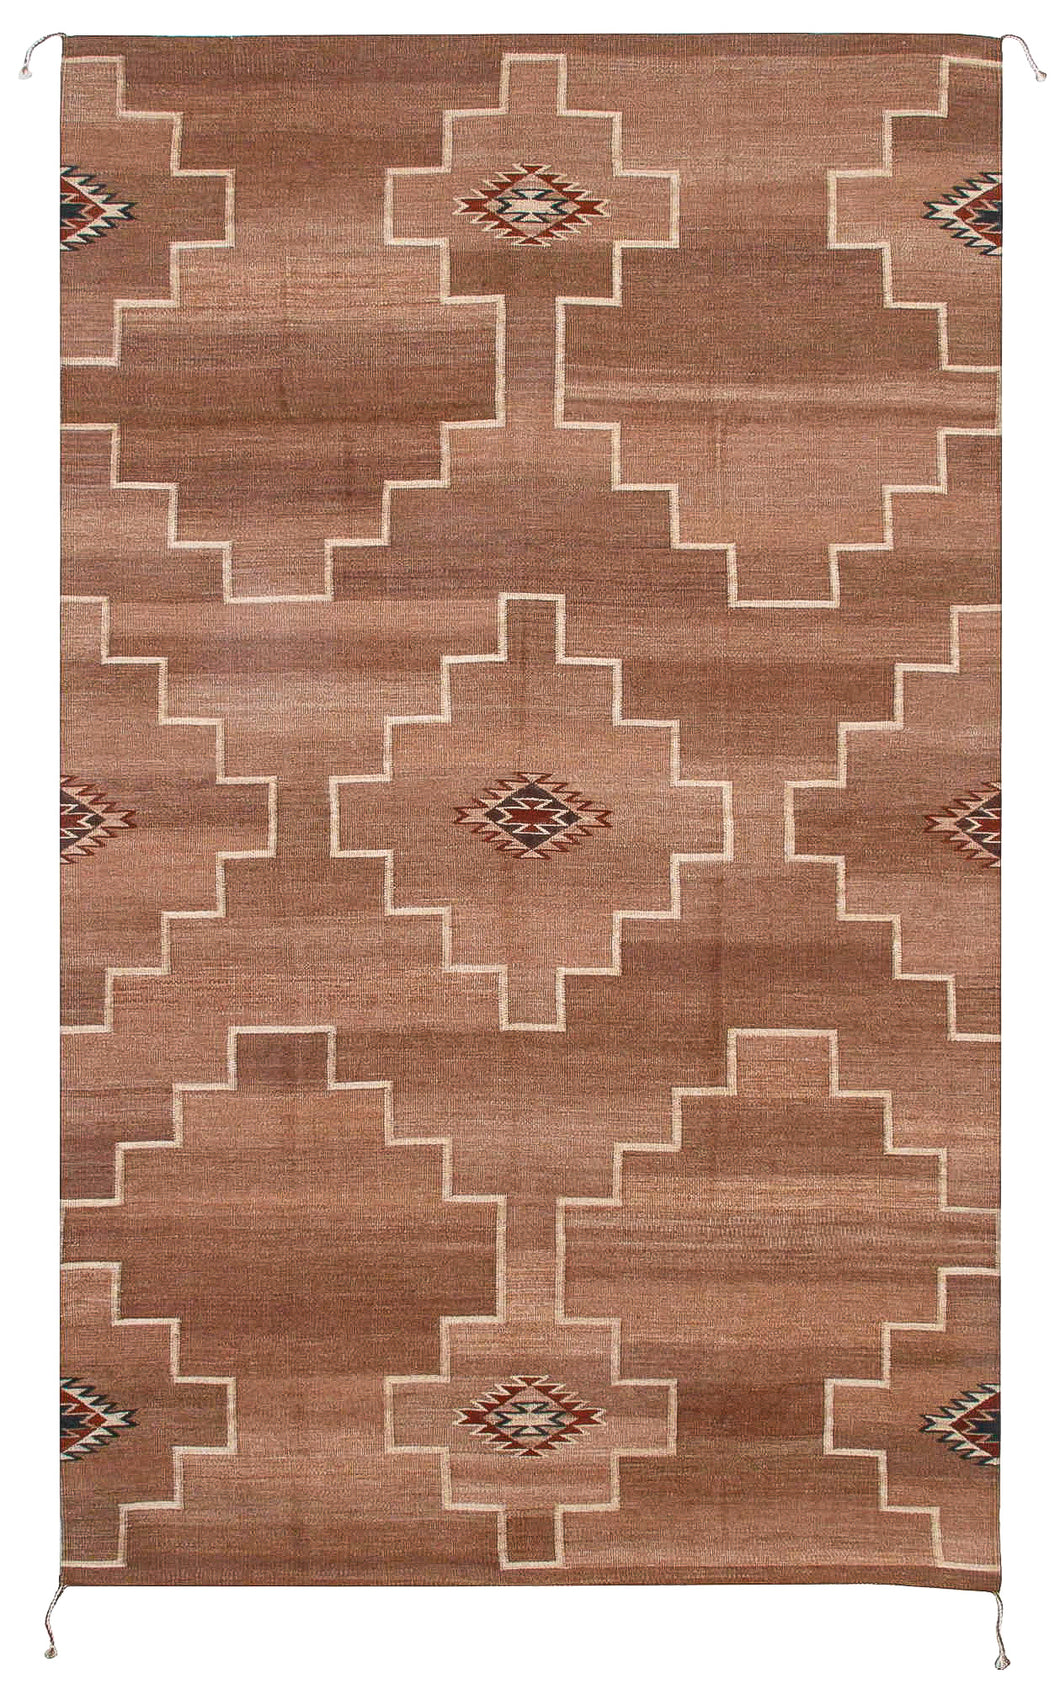 Handwoven Zapotec Indian Rug - Spirit Diamond Wool Oaxacan Textile